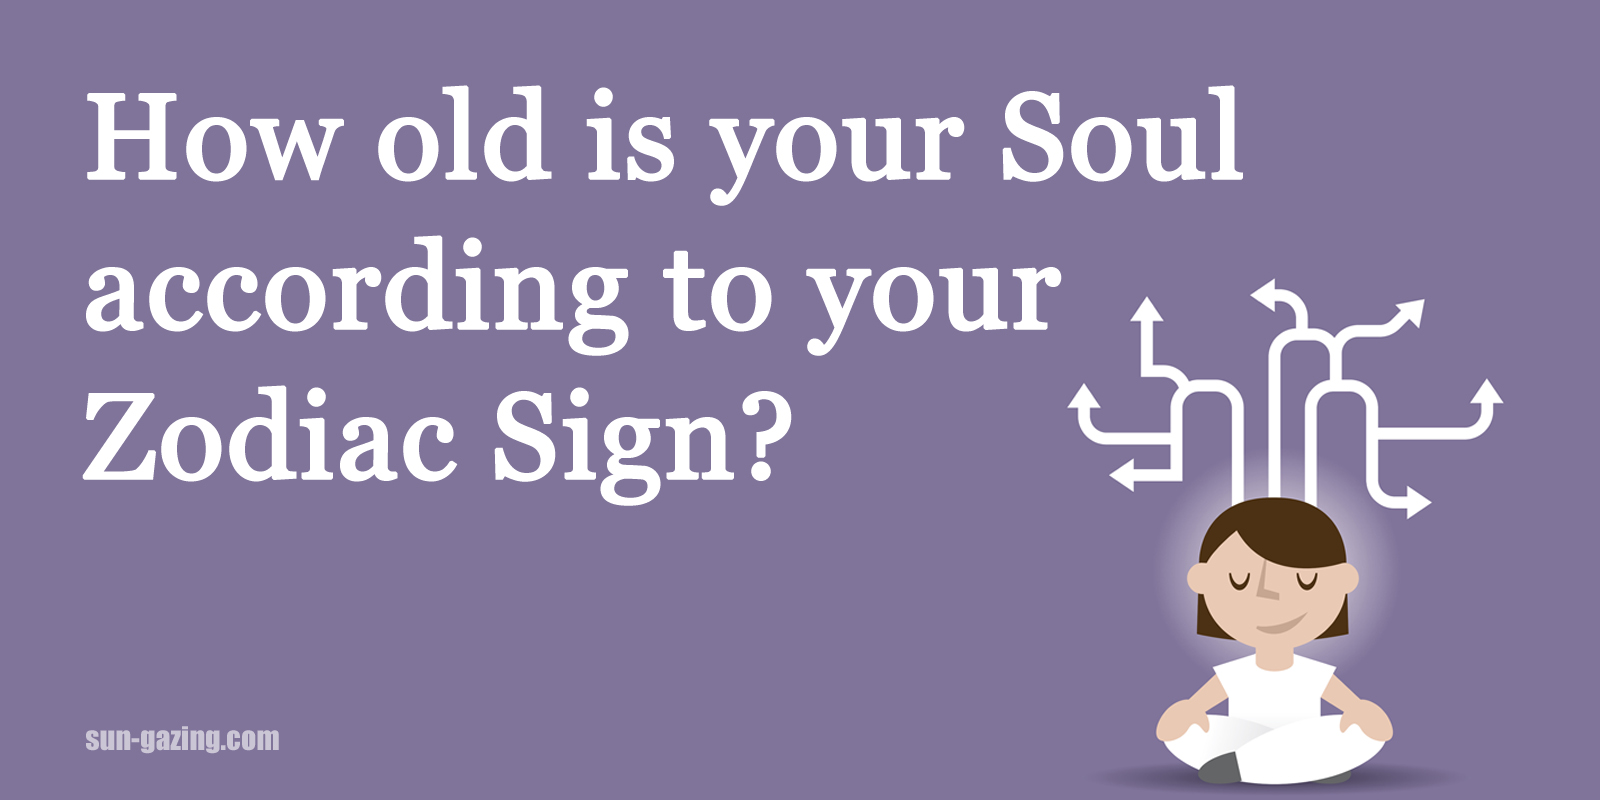 How Old Is Your Soul According To Your Zodiac Sign